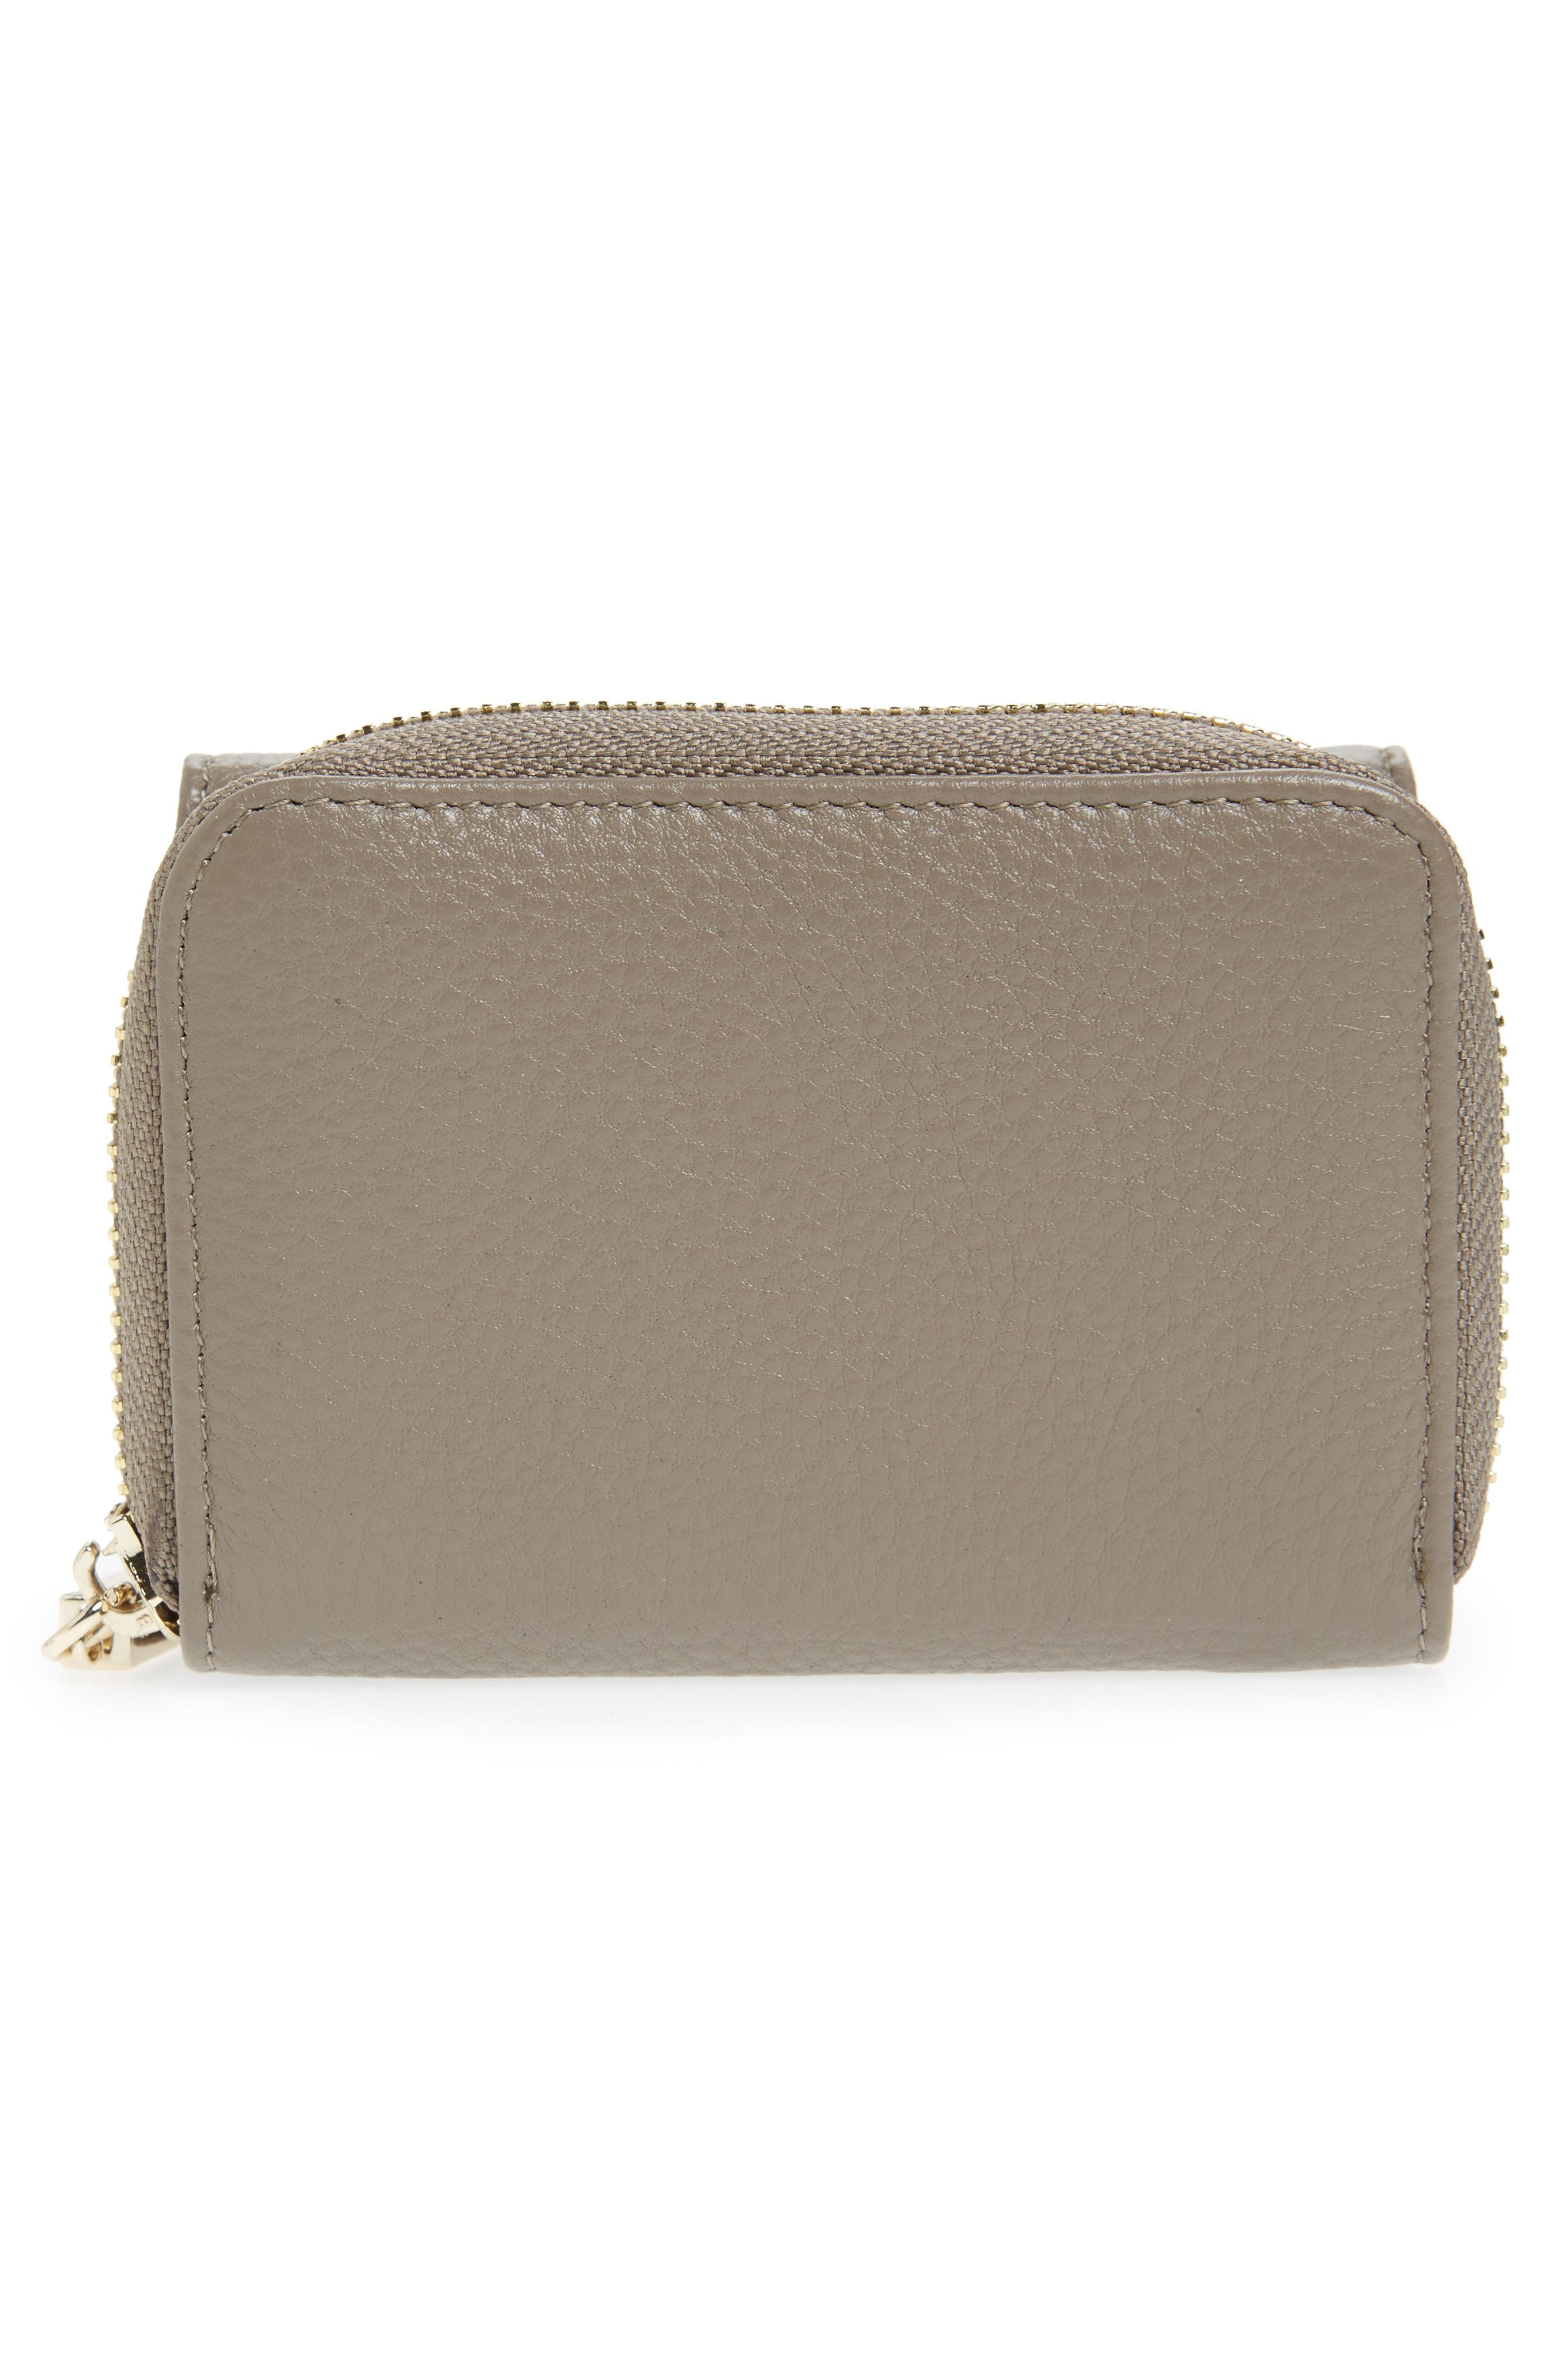 Céline Dion Small Adagio Leather Wallet,                             Alternate thumbnail 15, color,